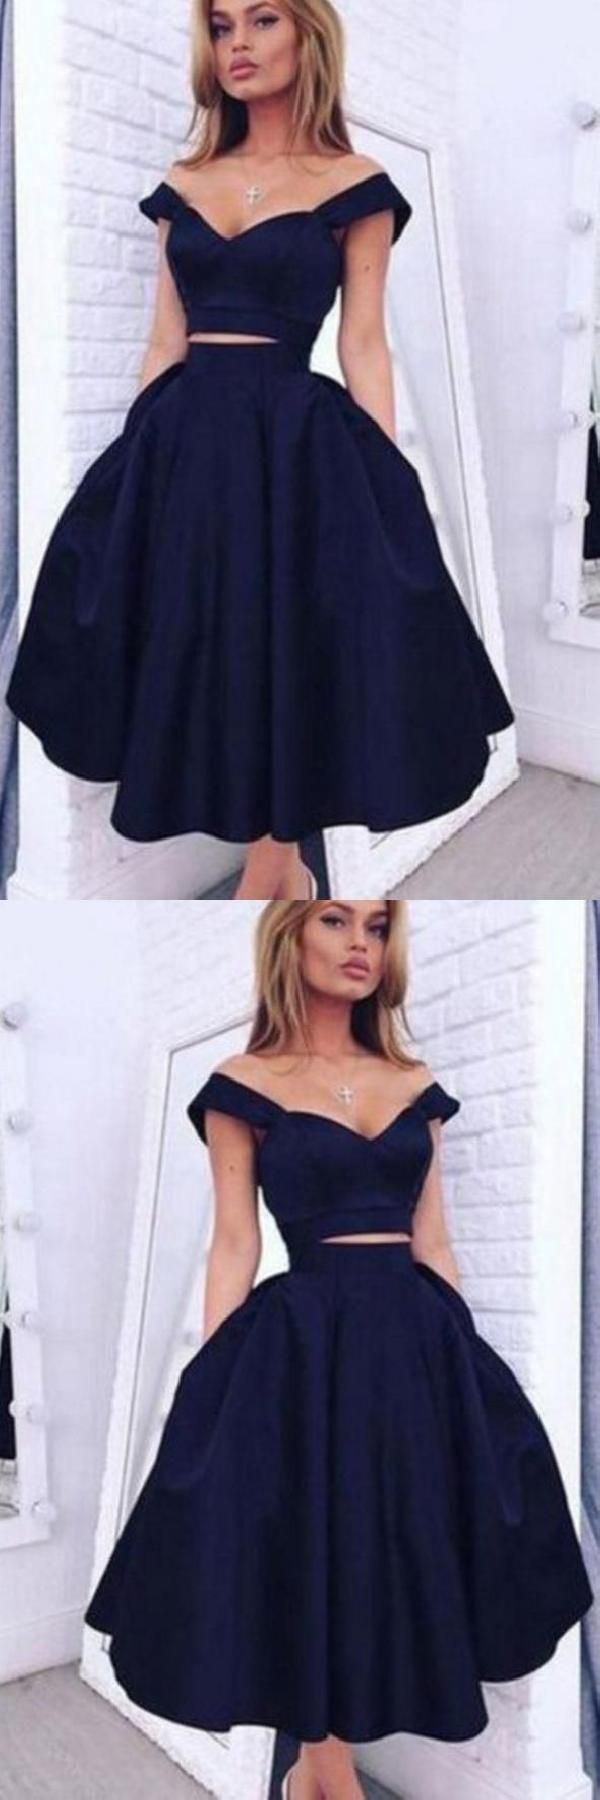 Vintage short two pieces cheap adel homecoming dresses